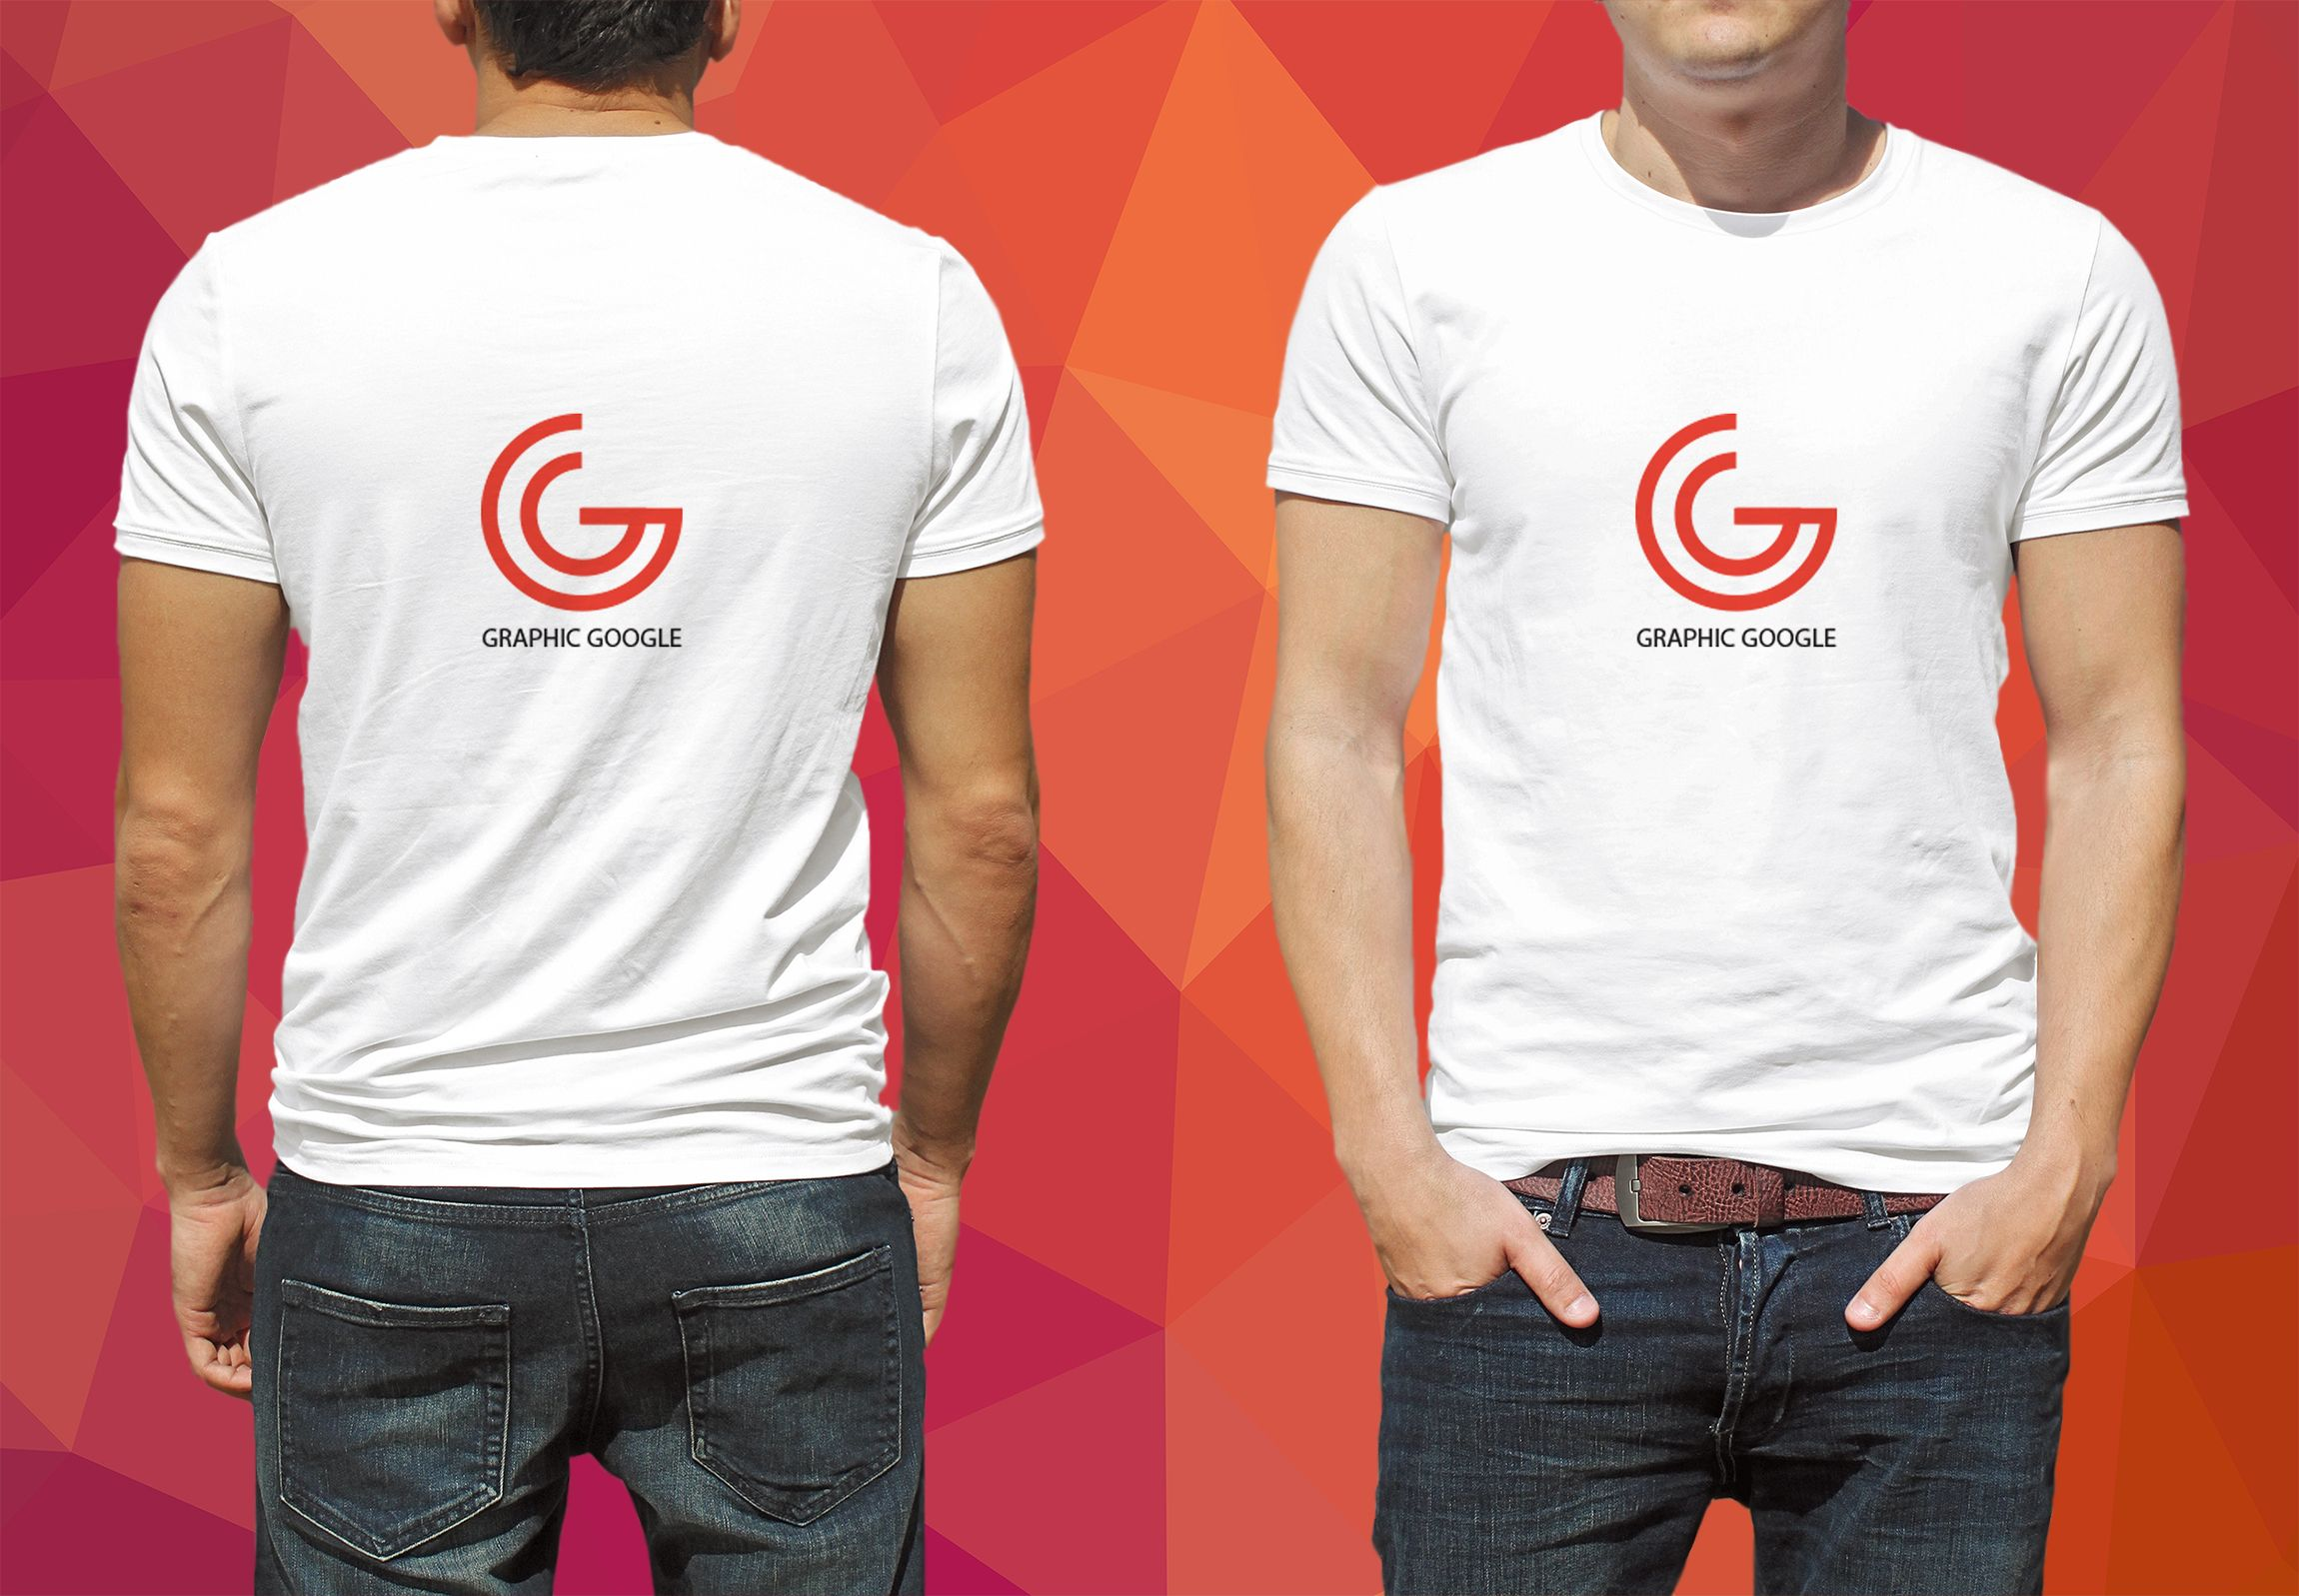 Download Free T Shirt Mockup For Logo Branding Graphic Google Tasty Graphic Designs Collection Shirt Mockup Tshirt Mockup Tshirt Mockup Free